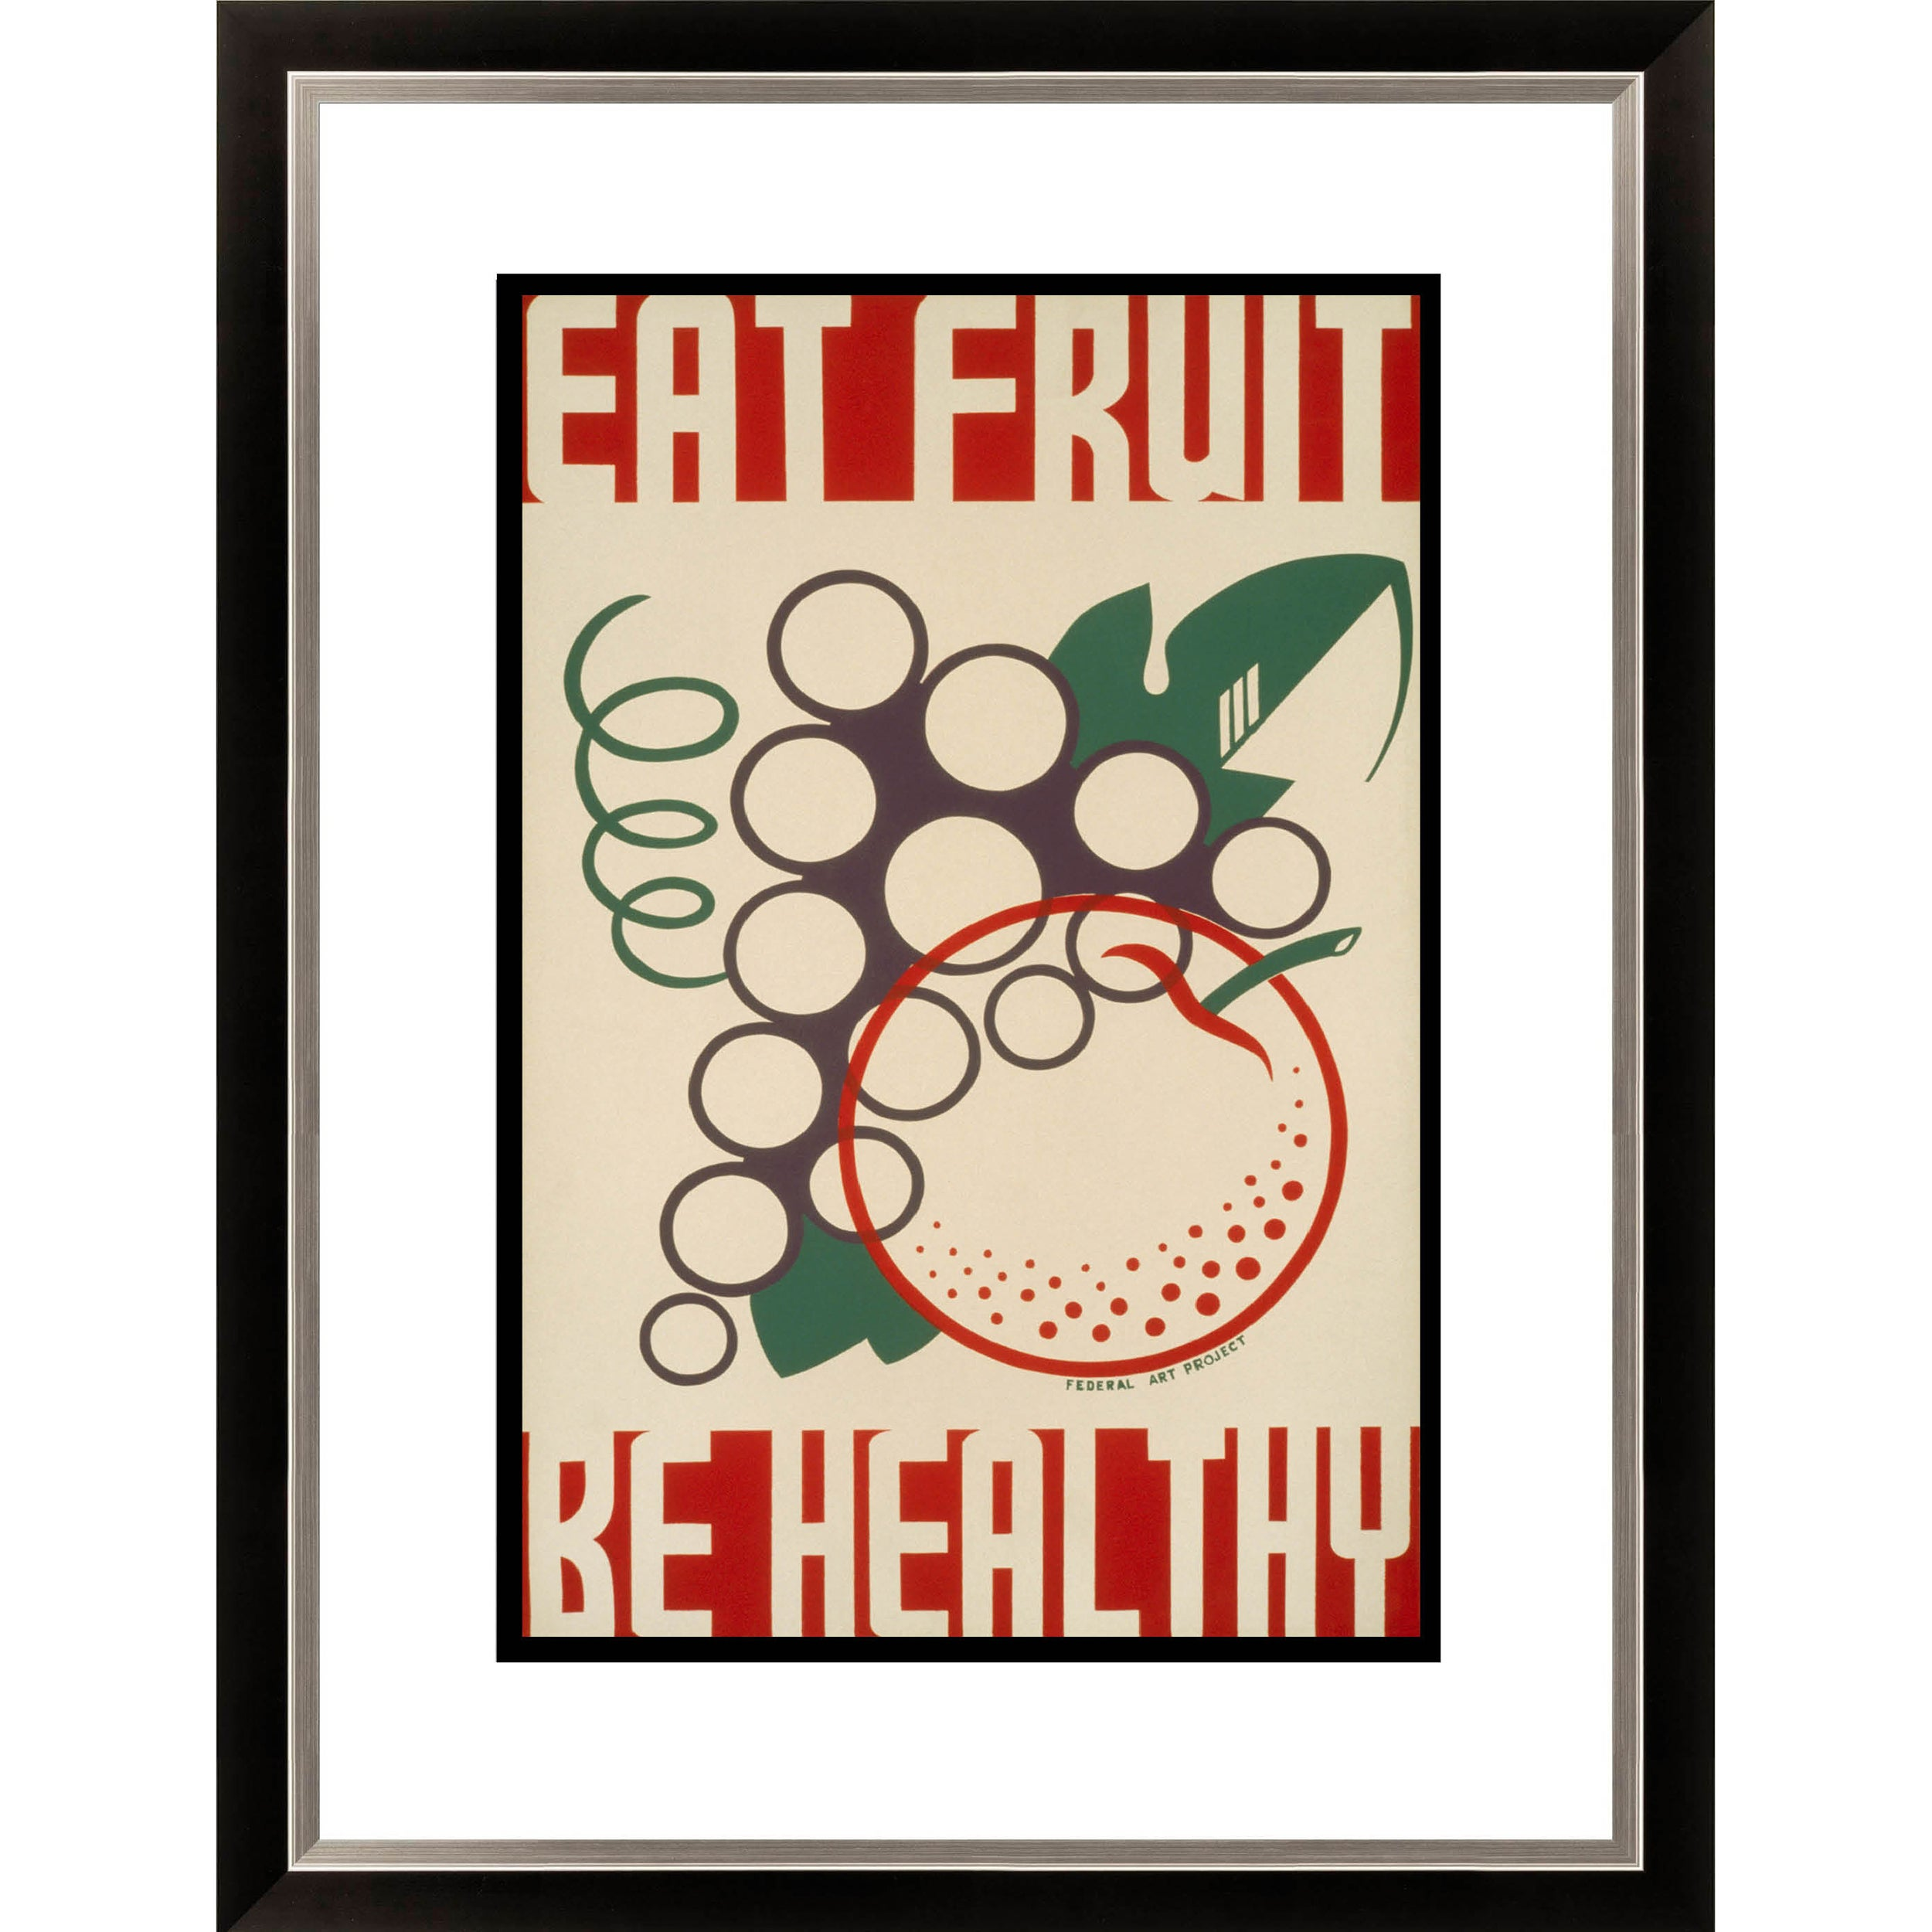 Gallery Direct 'Eat Fruit- Be Healthy' Framed Limited Edition Giclee